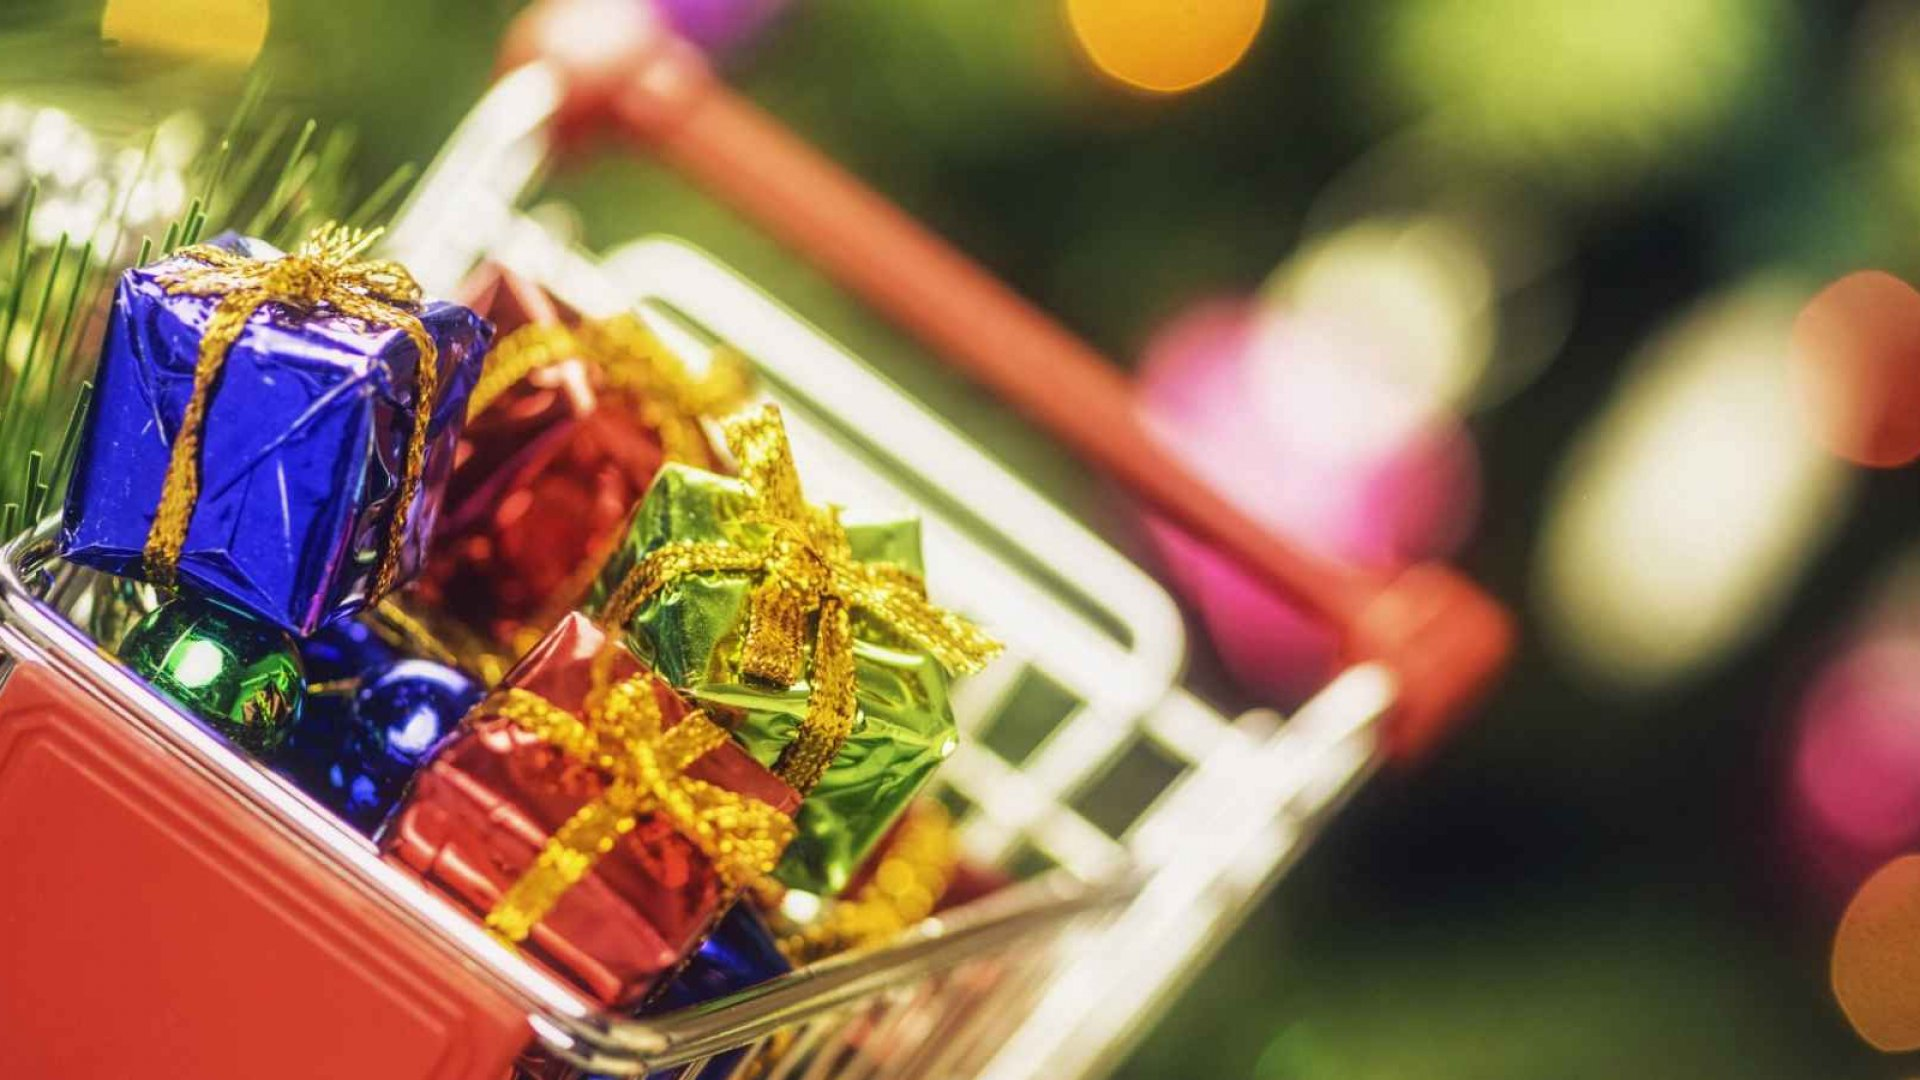 Early Holiday Marketing Remains Unpopular, But Attitudes Are Softening